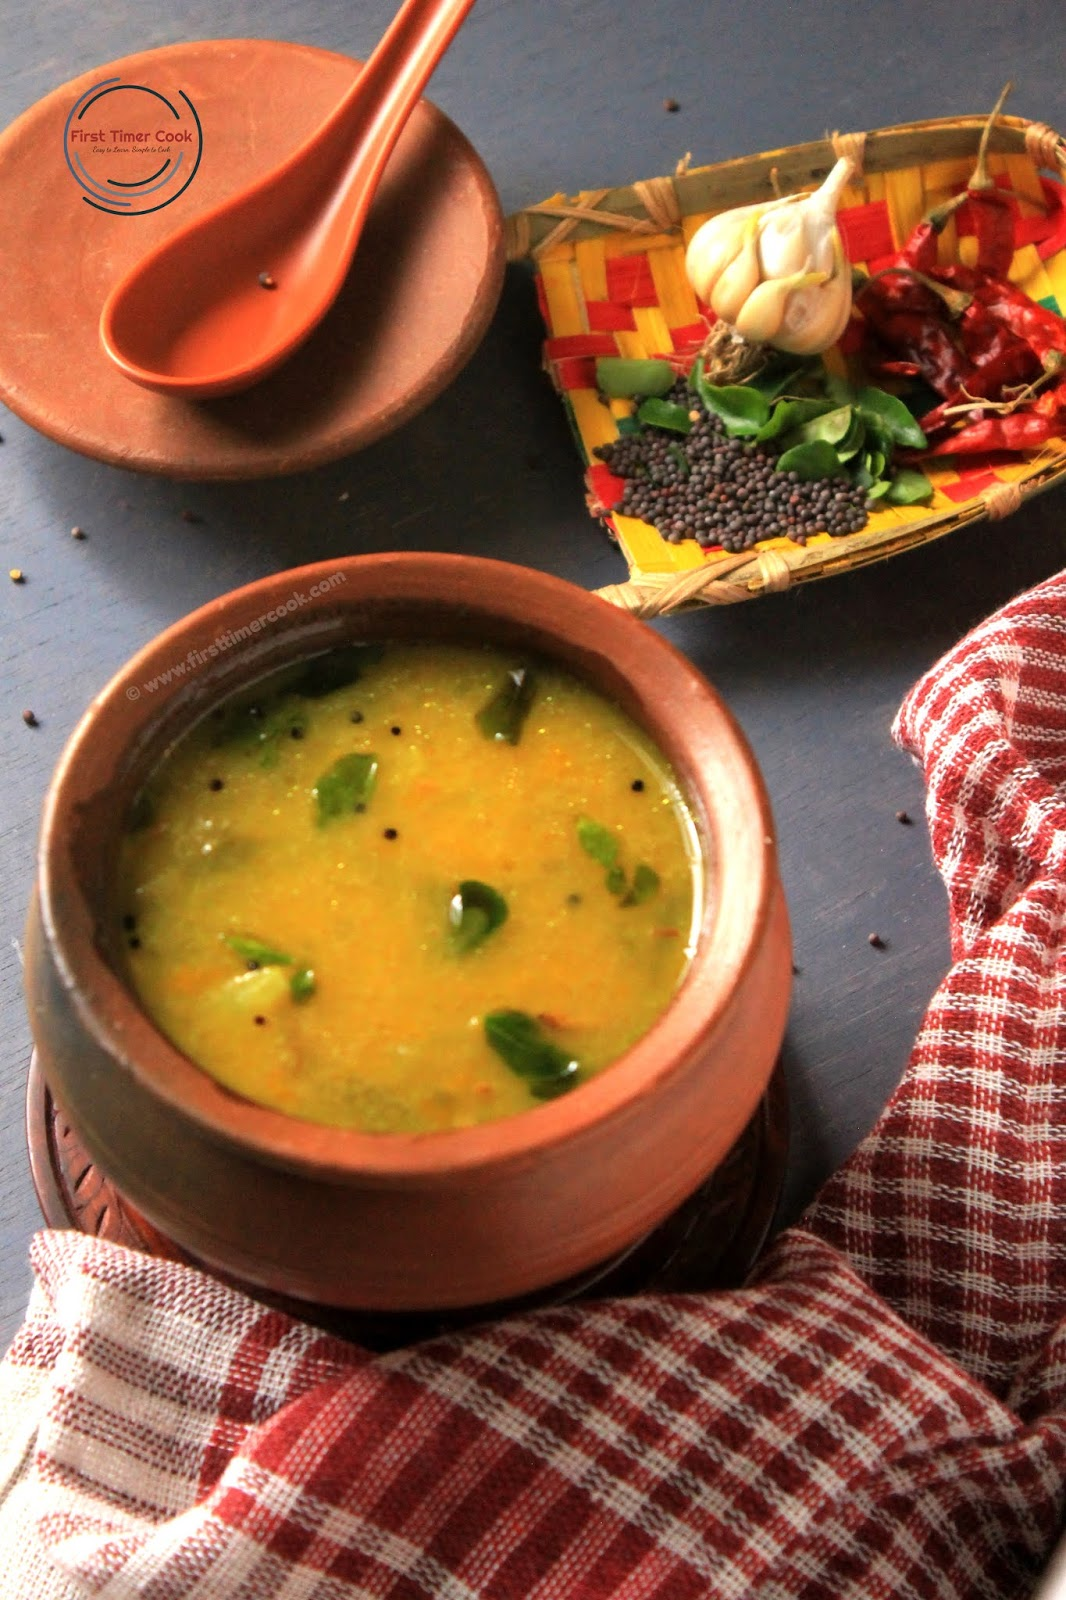 Soup of Fermented Rice Water with Vegetables